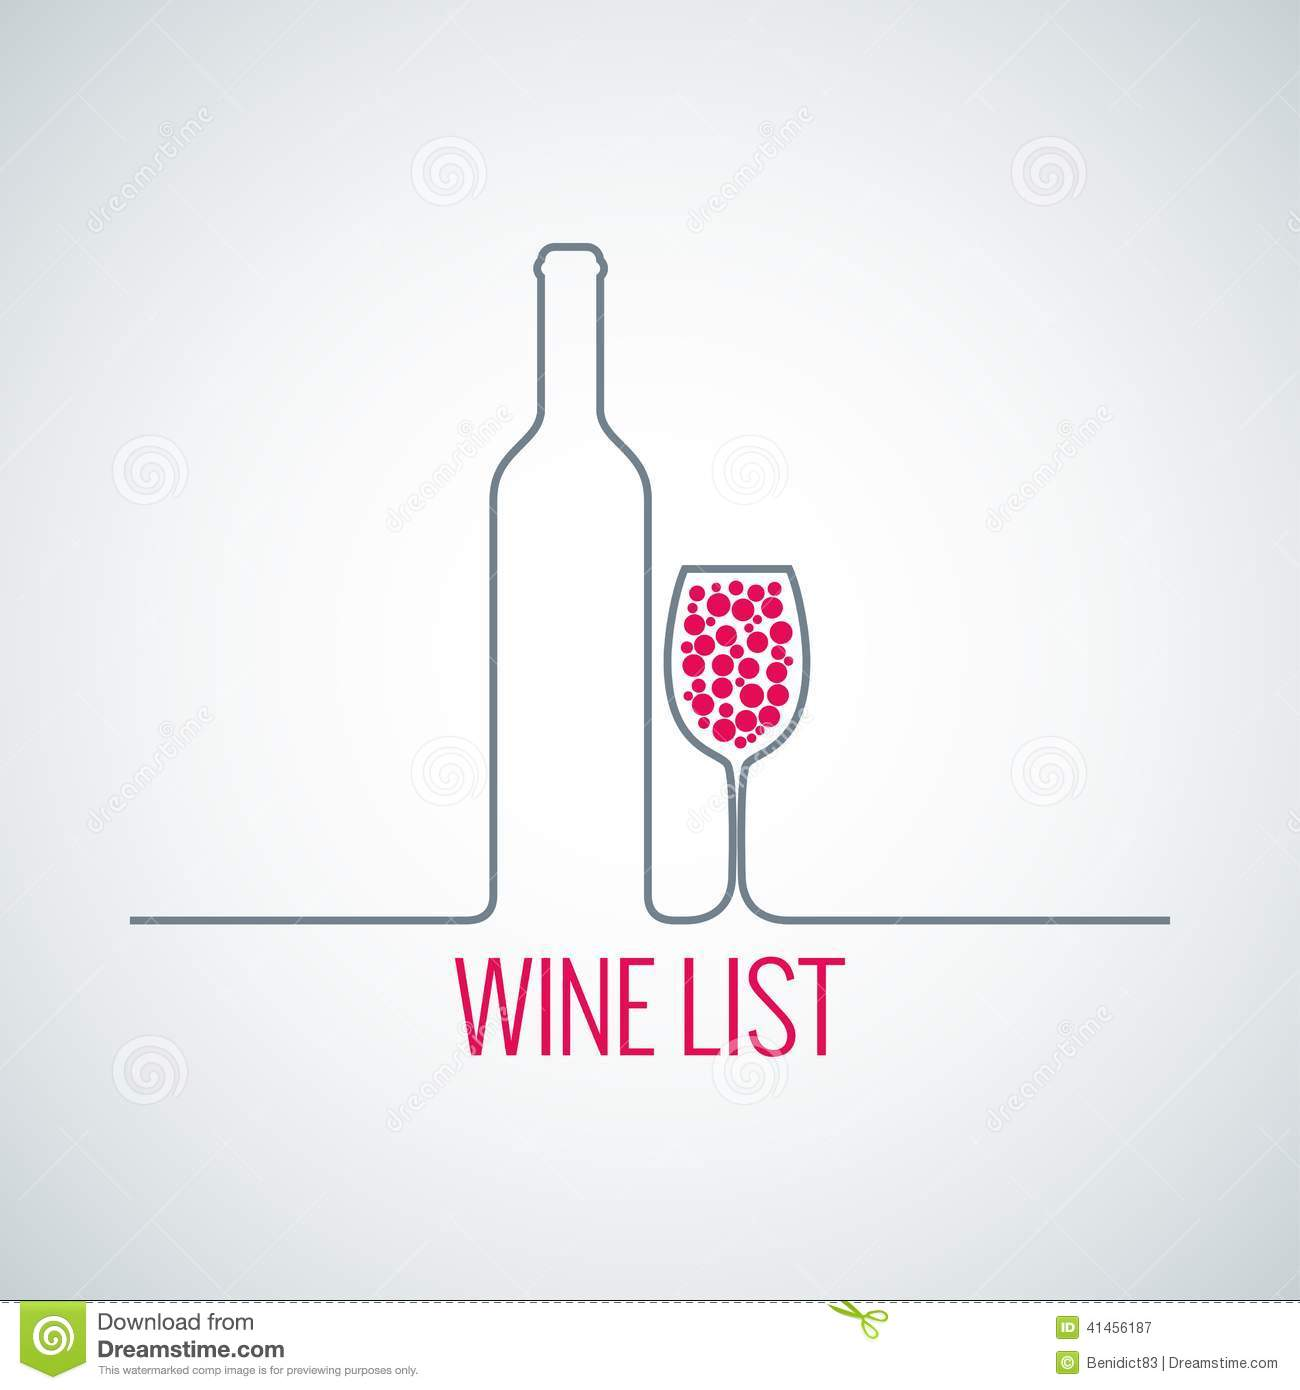 wine bottle glass list menu background stock vector - illustration